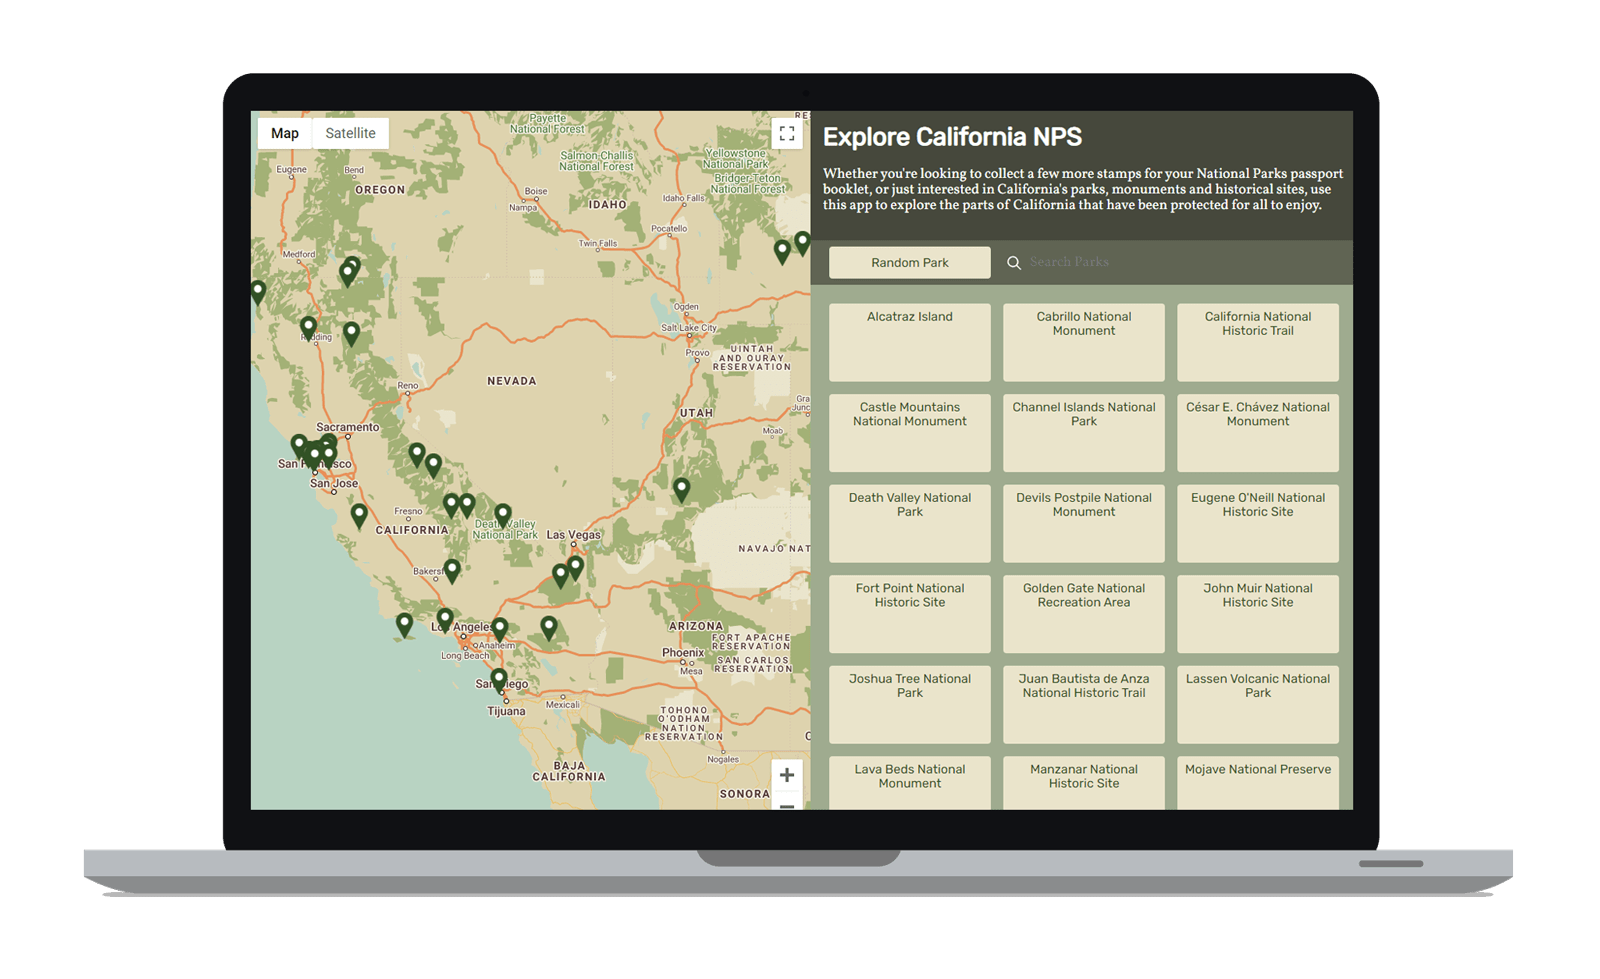 laptop computer displaying the Explore California National Parks website